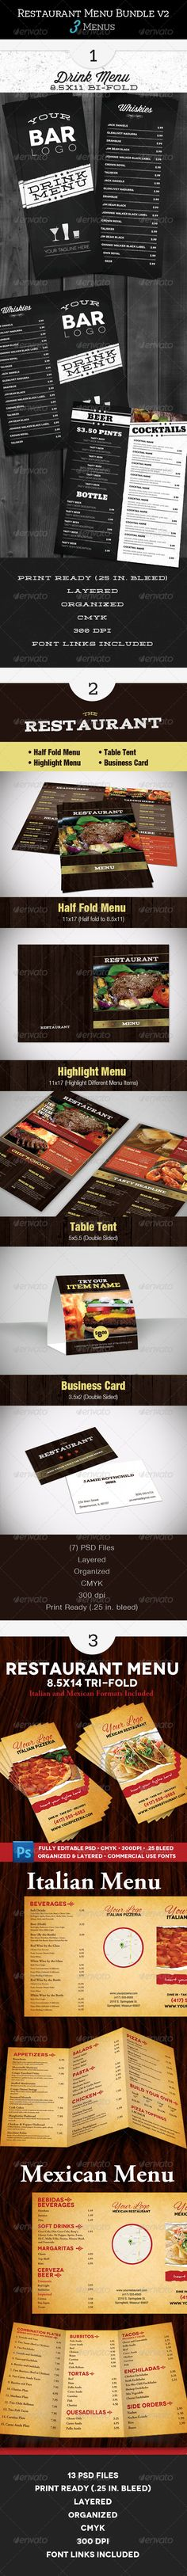 1000+ images about Menu/ branding on Pinterest